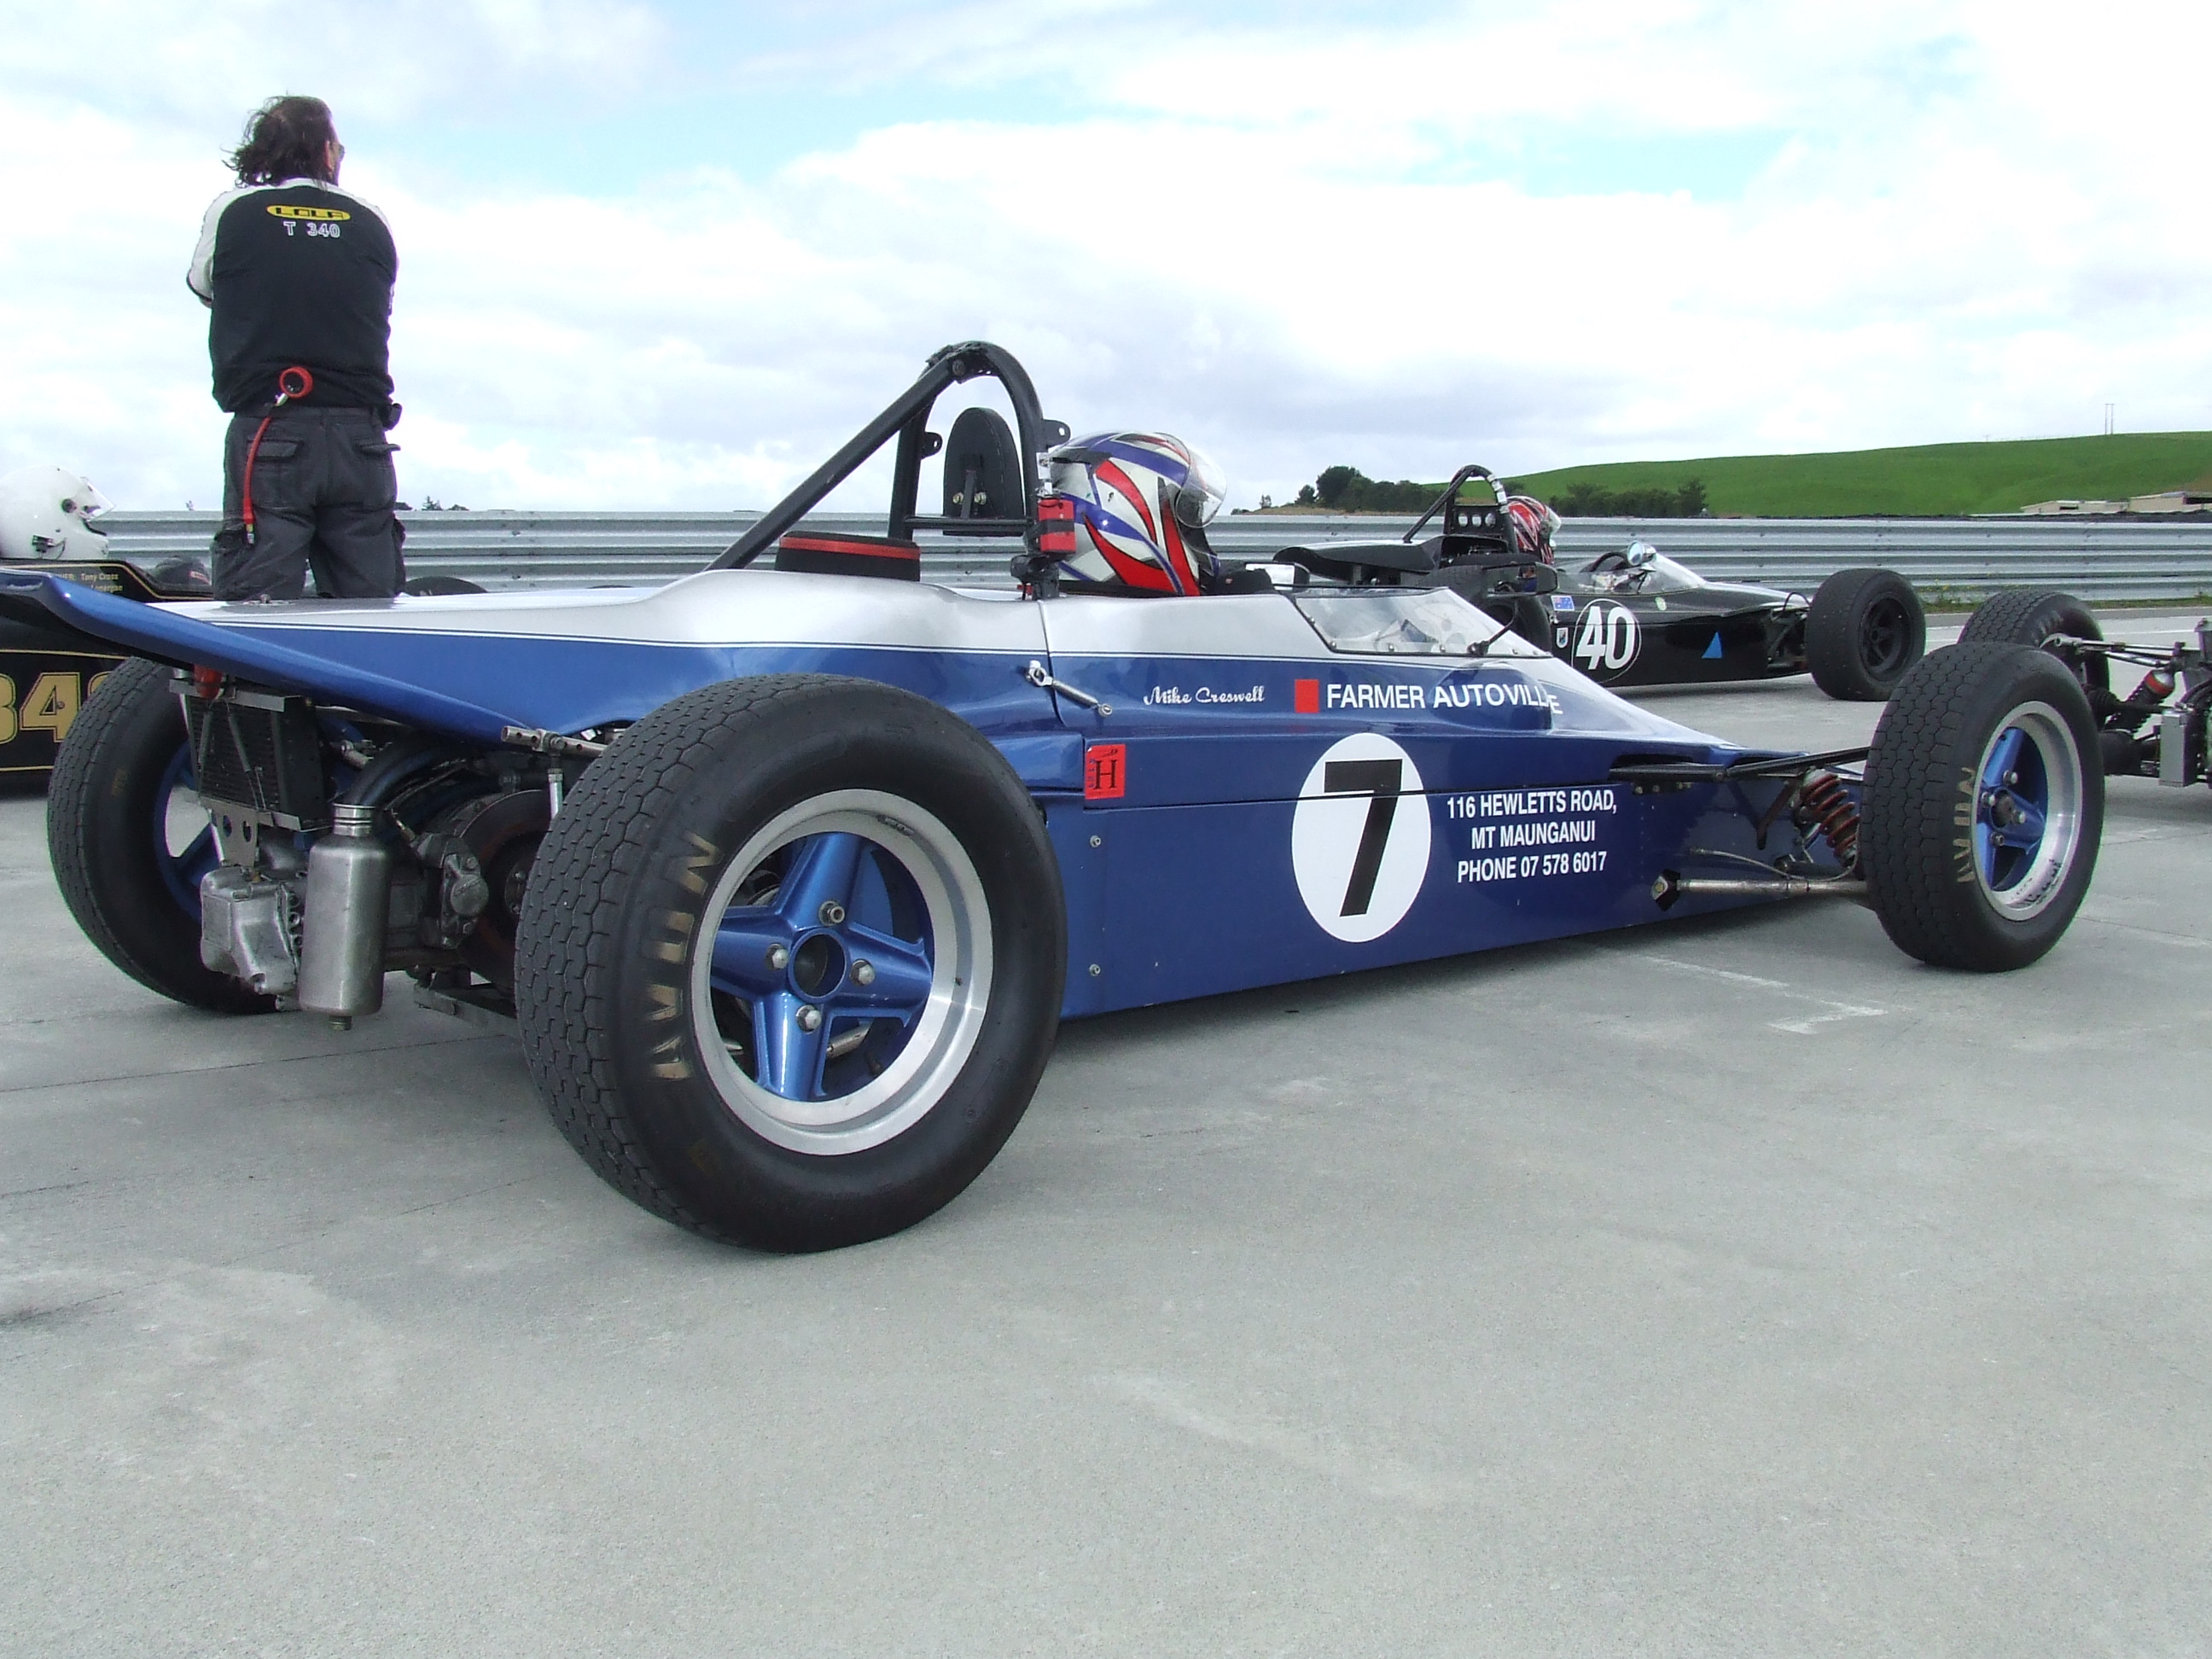 On the Grid: Taupo - Historic Formula Ford Racing